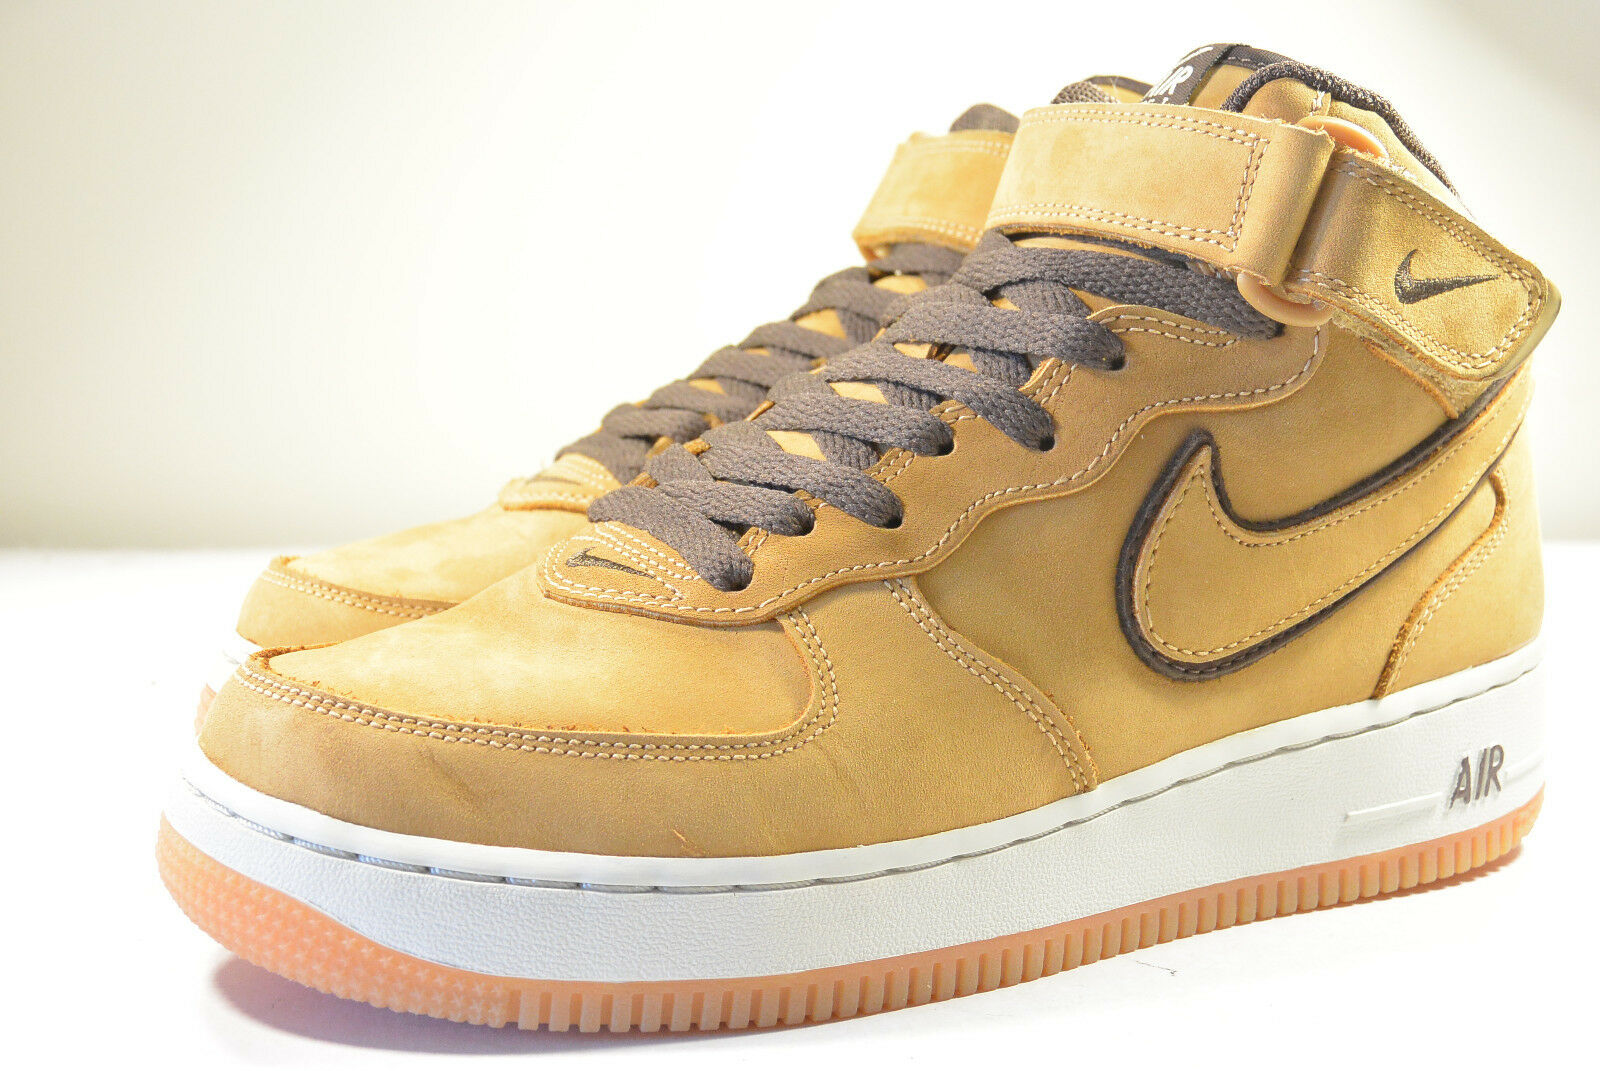 DS NIKE 2003 AIR FORCE 1 WP WATERPROOF WHEAT 7.5 SUPREME HYPERFUSE GOLD MAX FLAX